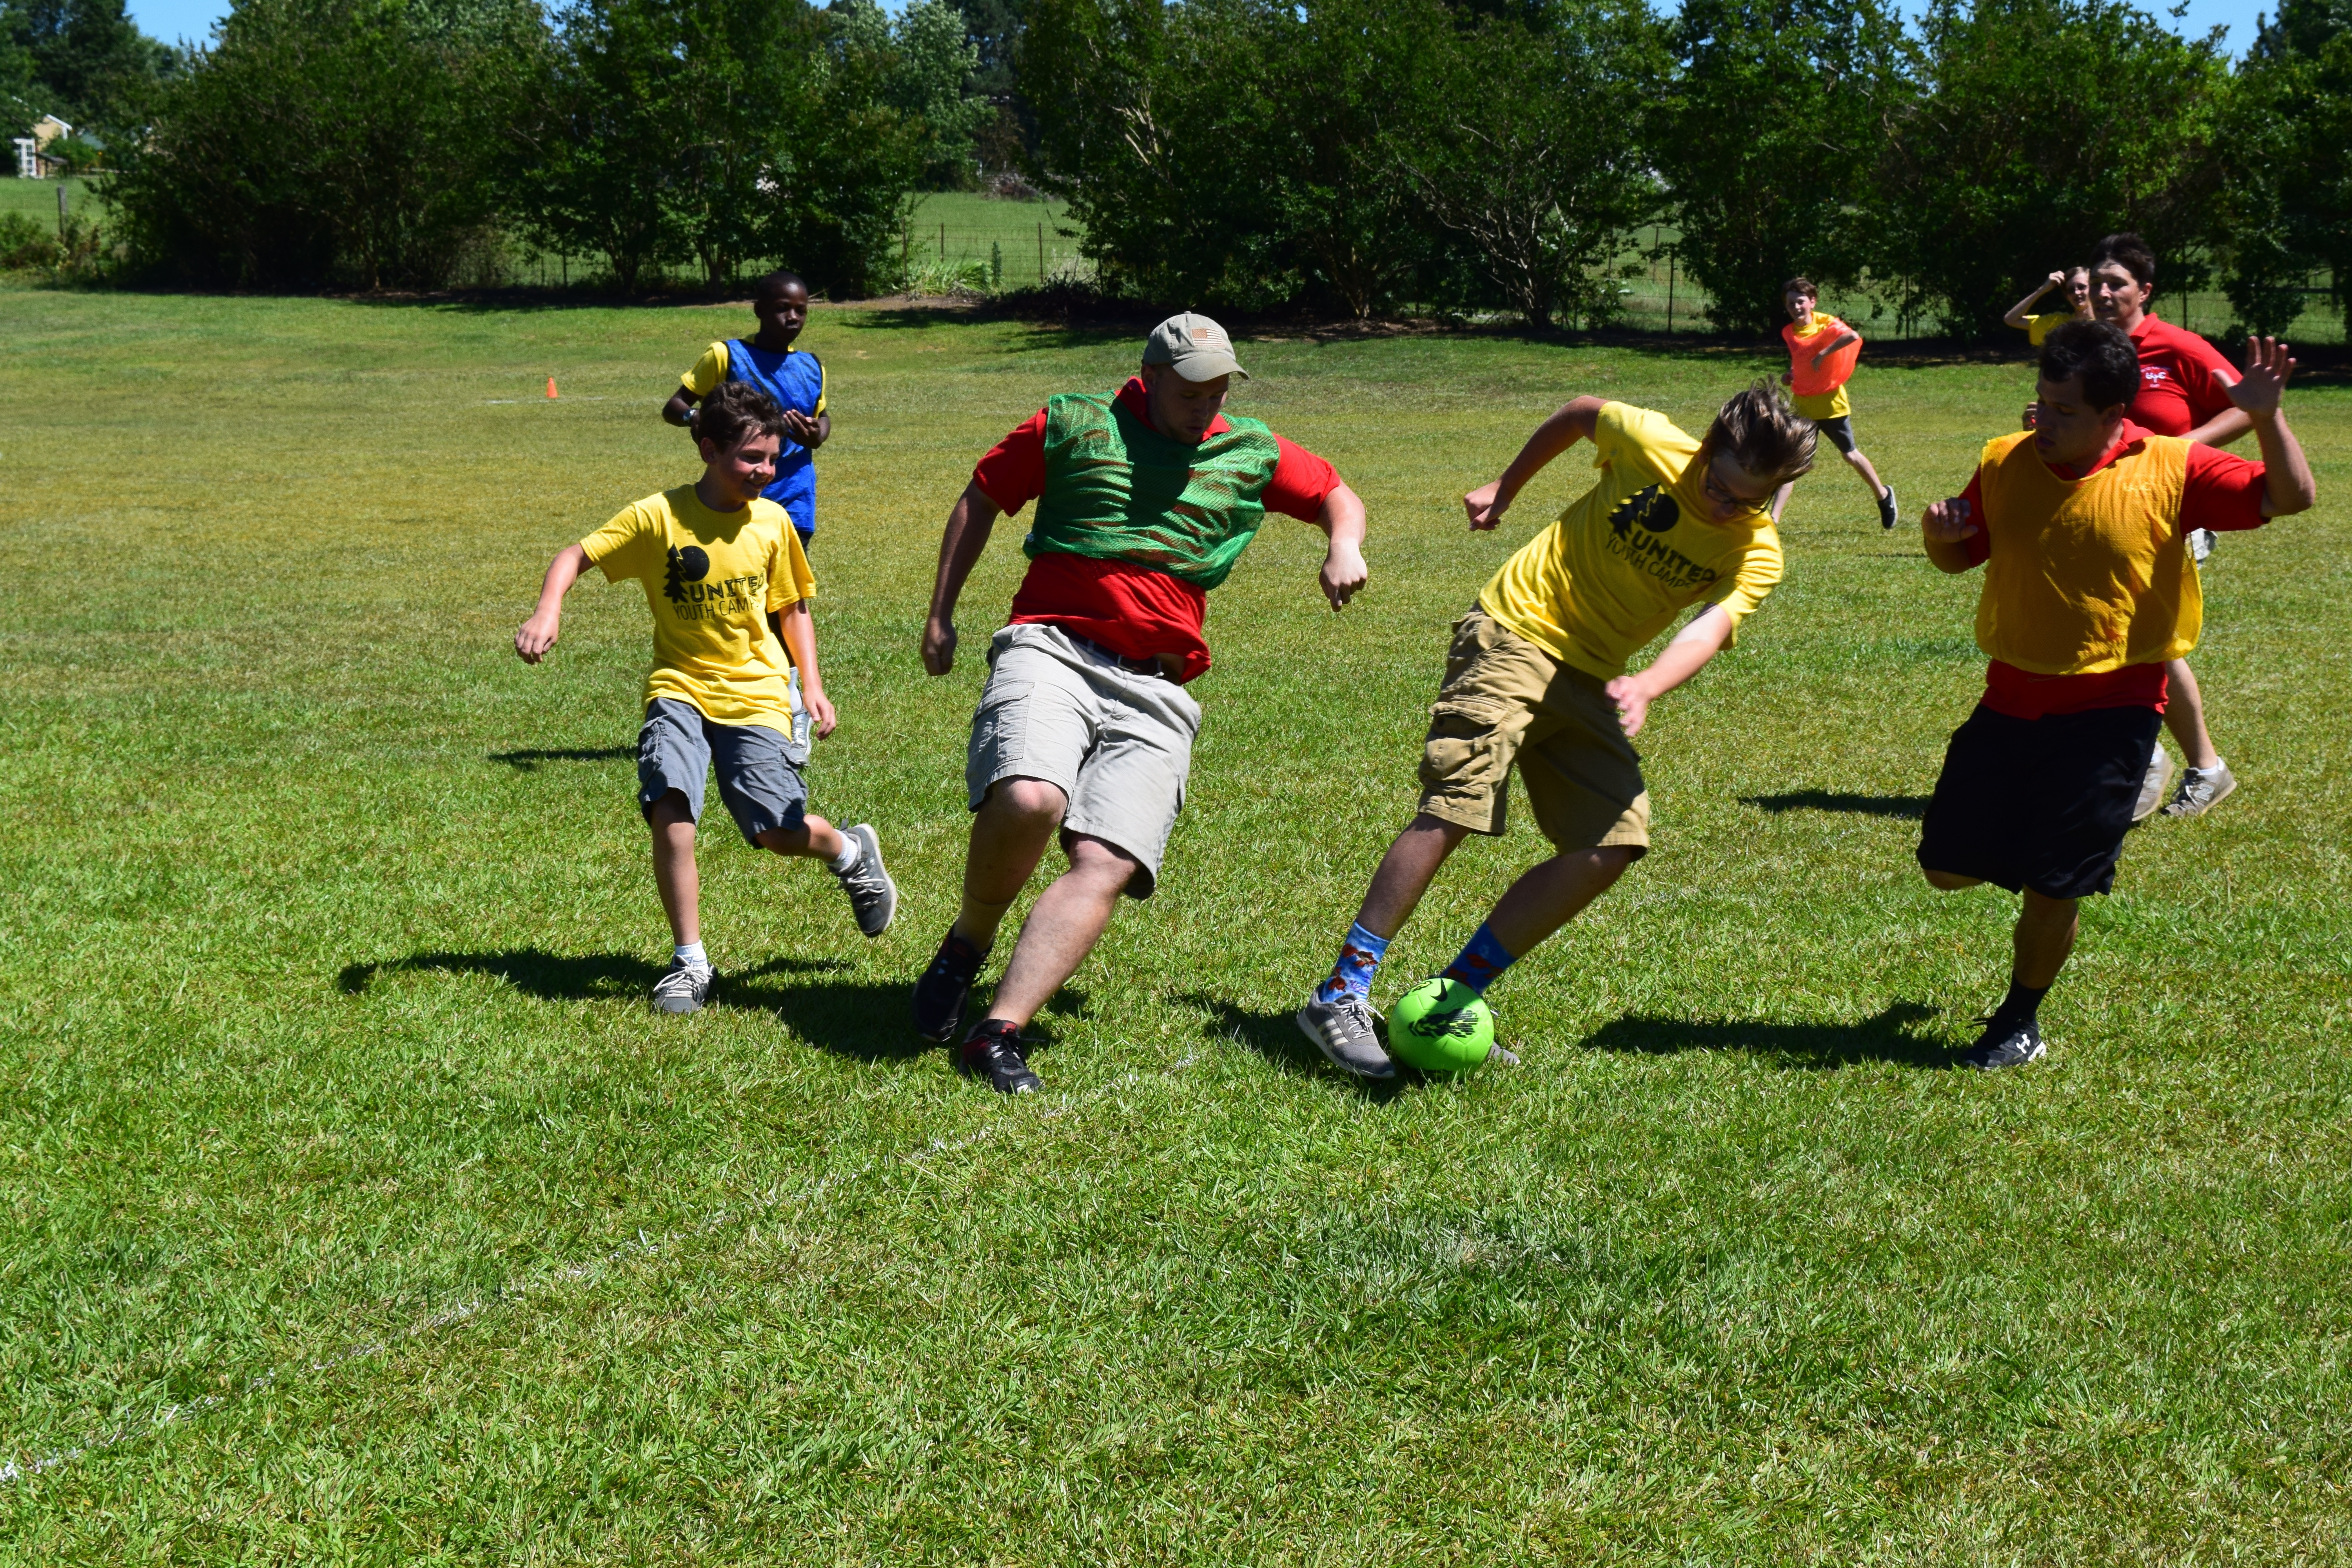 Campers at Camp Woodmen play a game of speedaway.